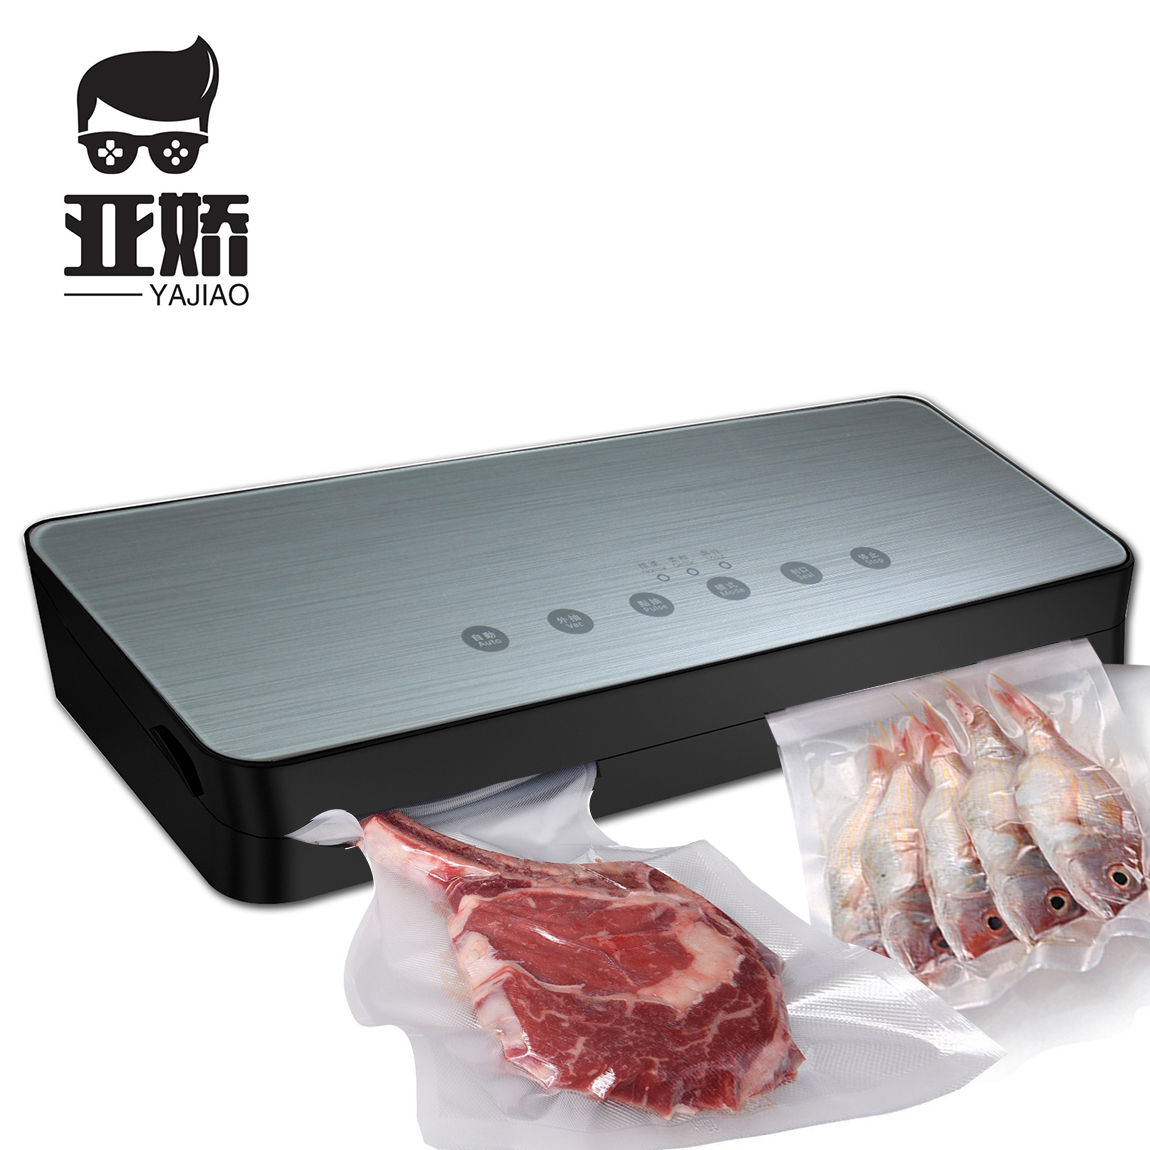 YAJIAO 65KPA Food Vacuum Sealer Packaging Machine With 10pcs Bags Vacuum Food Sealing Machine Vacuum Sealer Packer 220V/110V